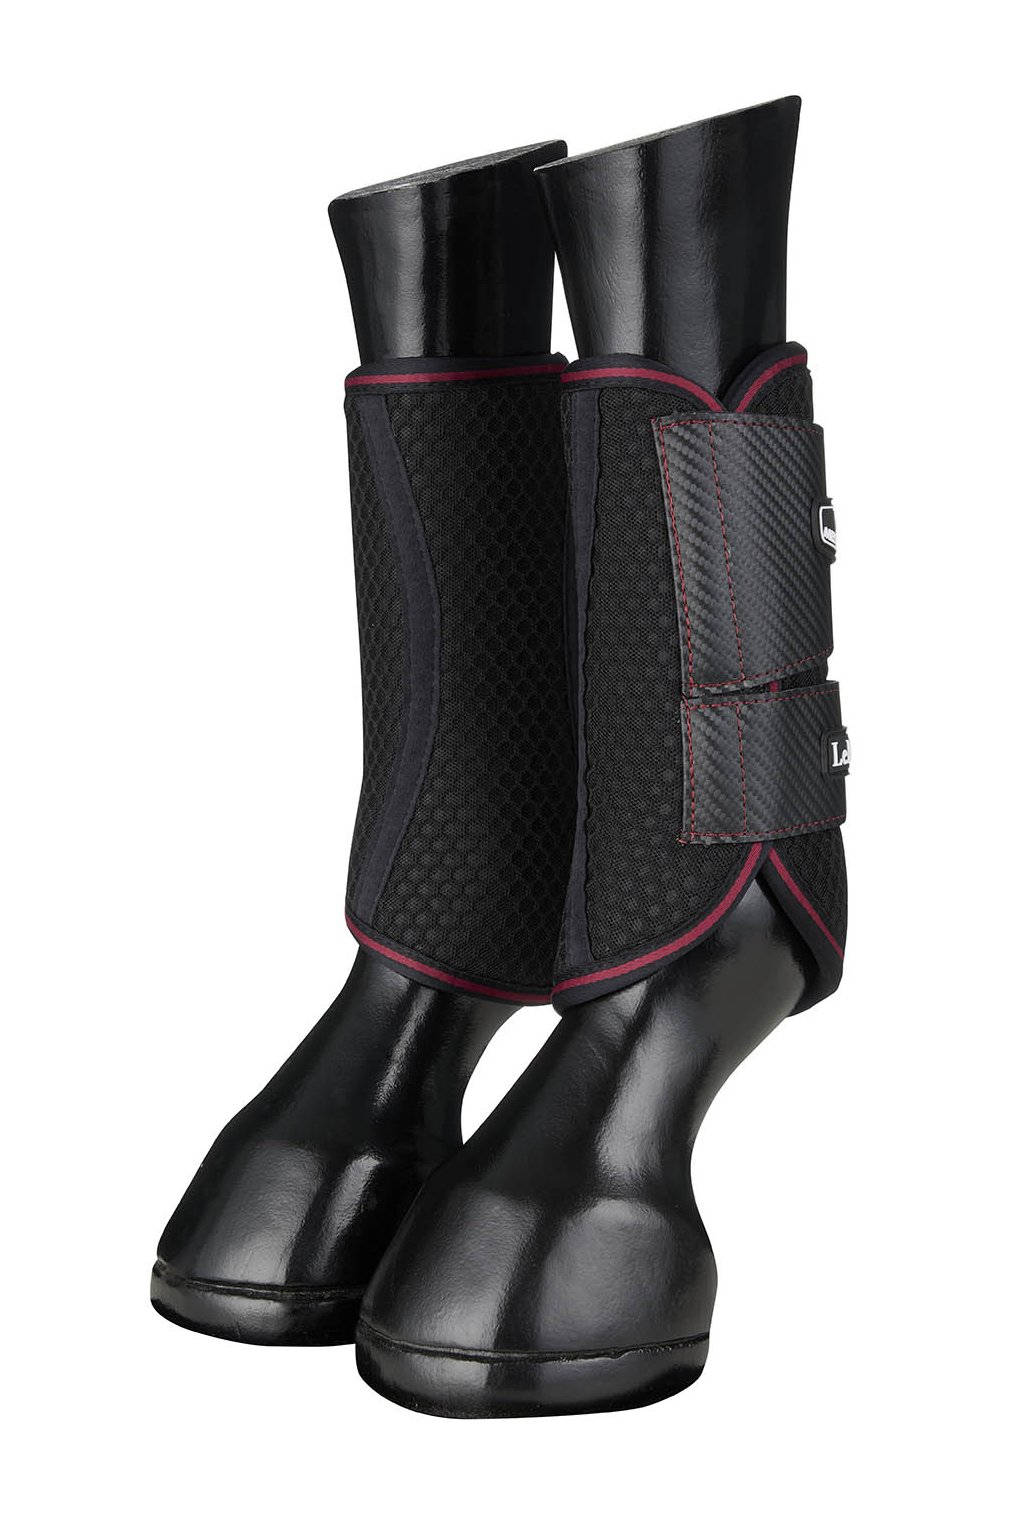 lm carbonmeshboots mulberry1 lr